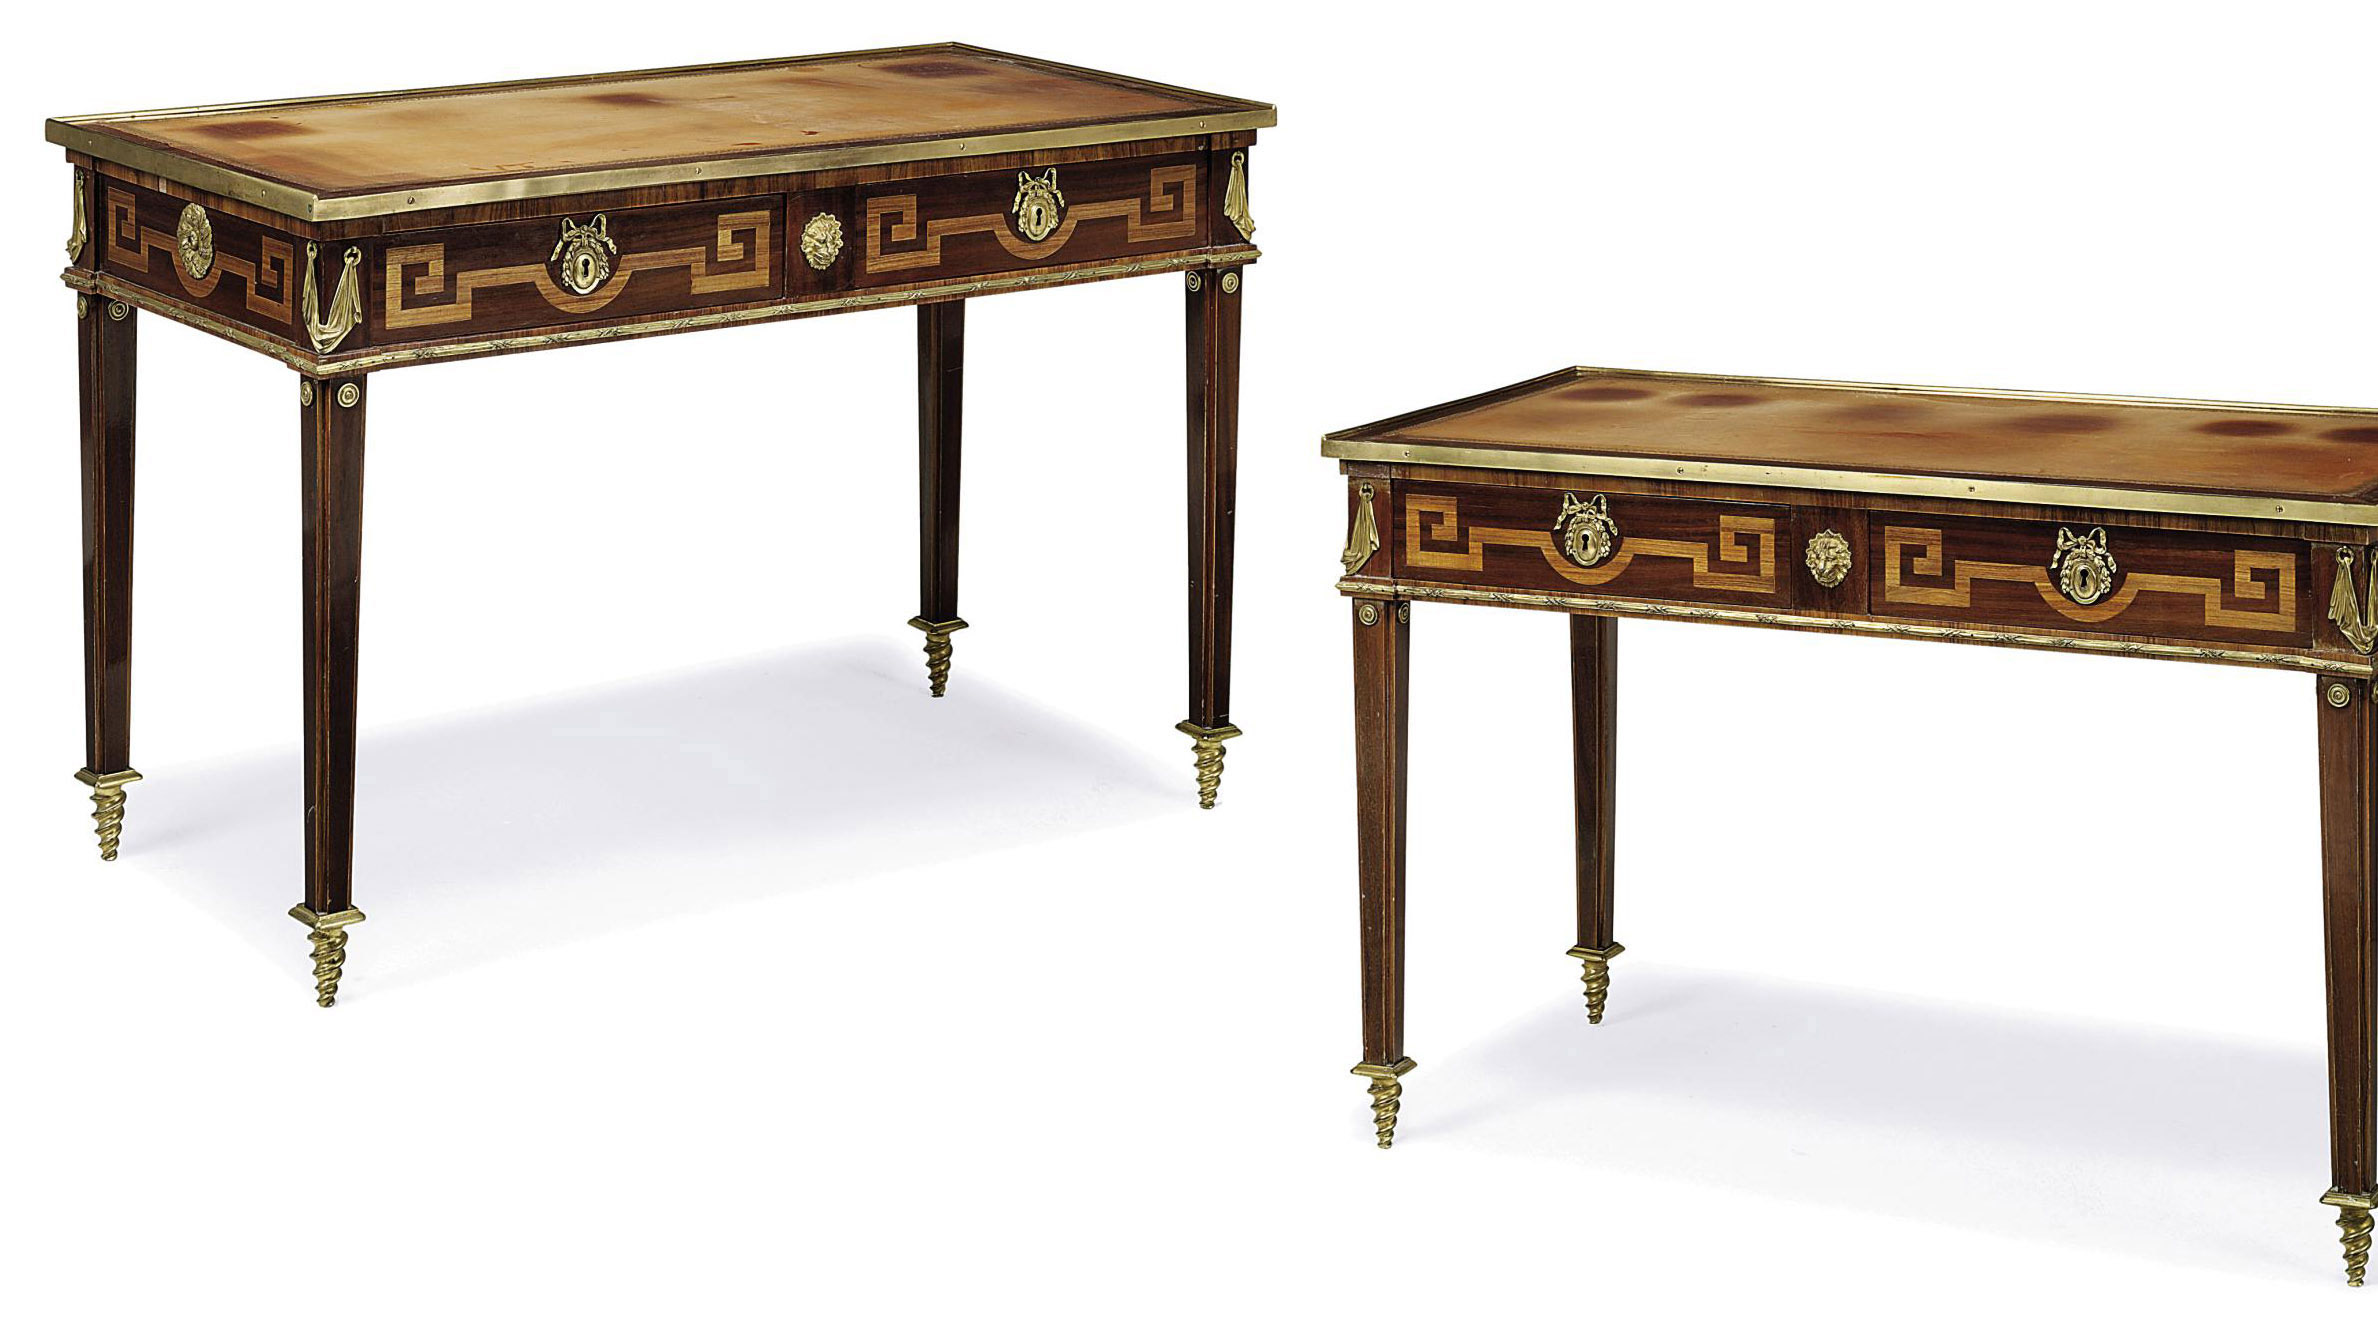 A PAIR OF LOUIS XVI STYLE ORMOLU-MOUNTED MAHOGANY, KINGWOOD AND PARQUETRY TABLES À ÉCRIRE